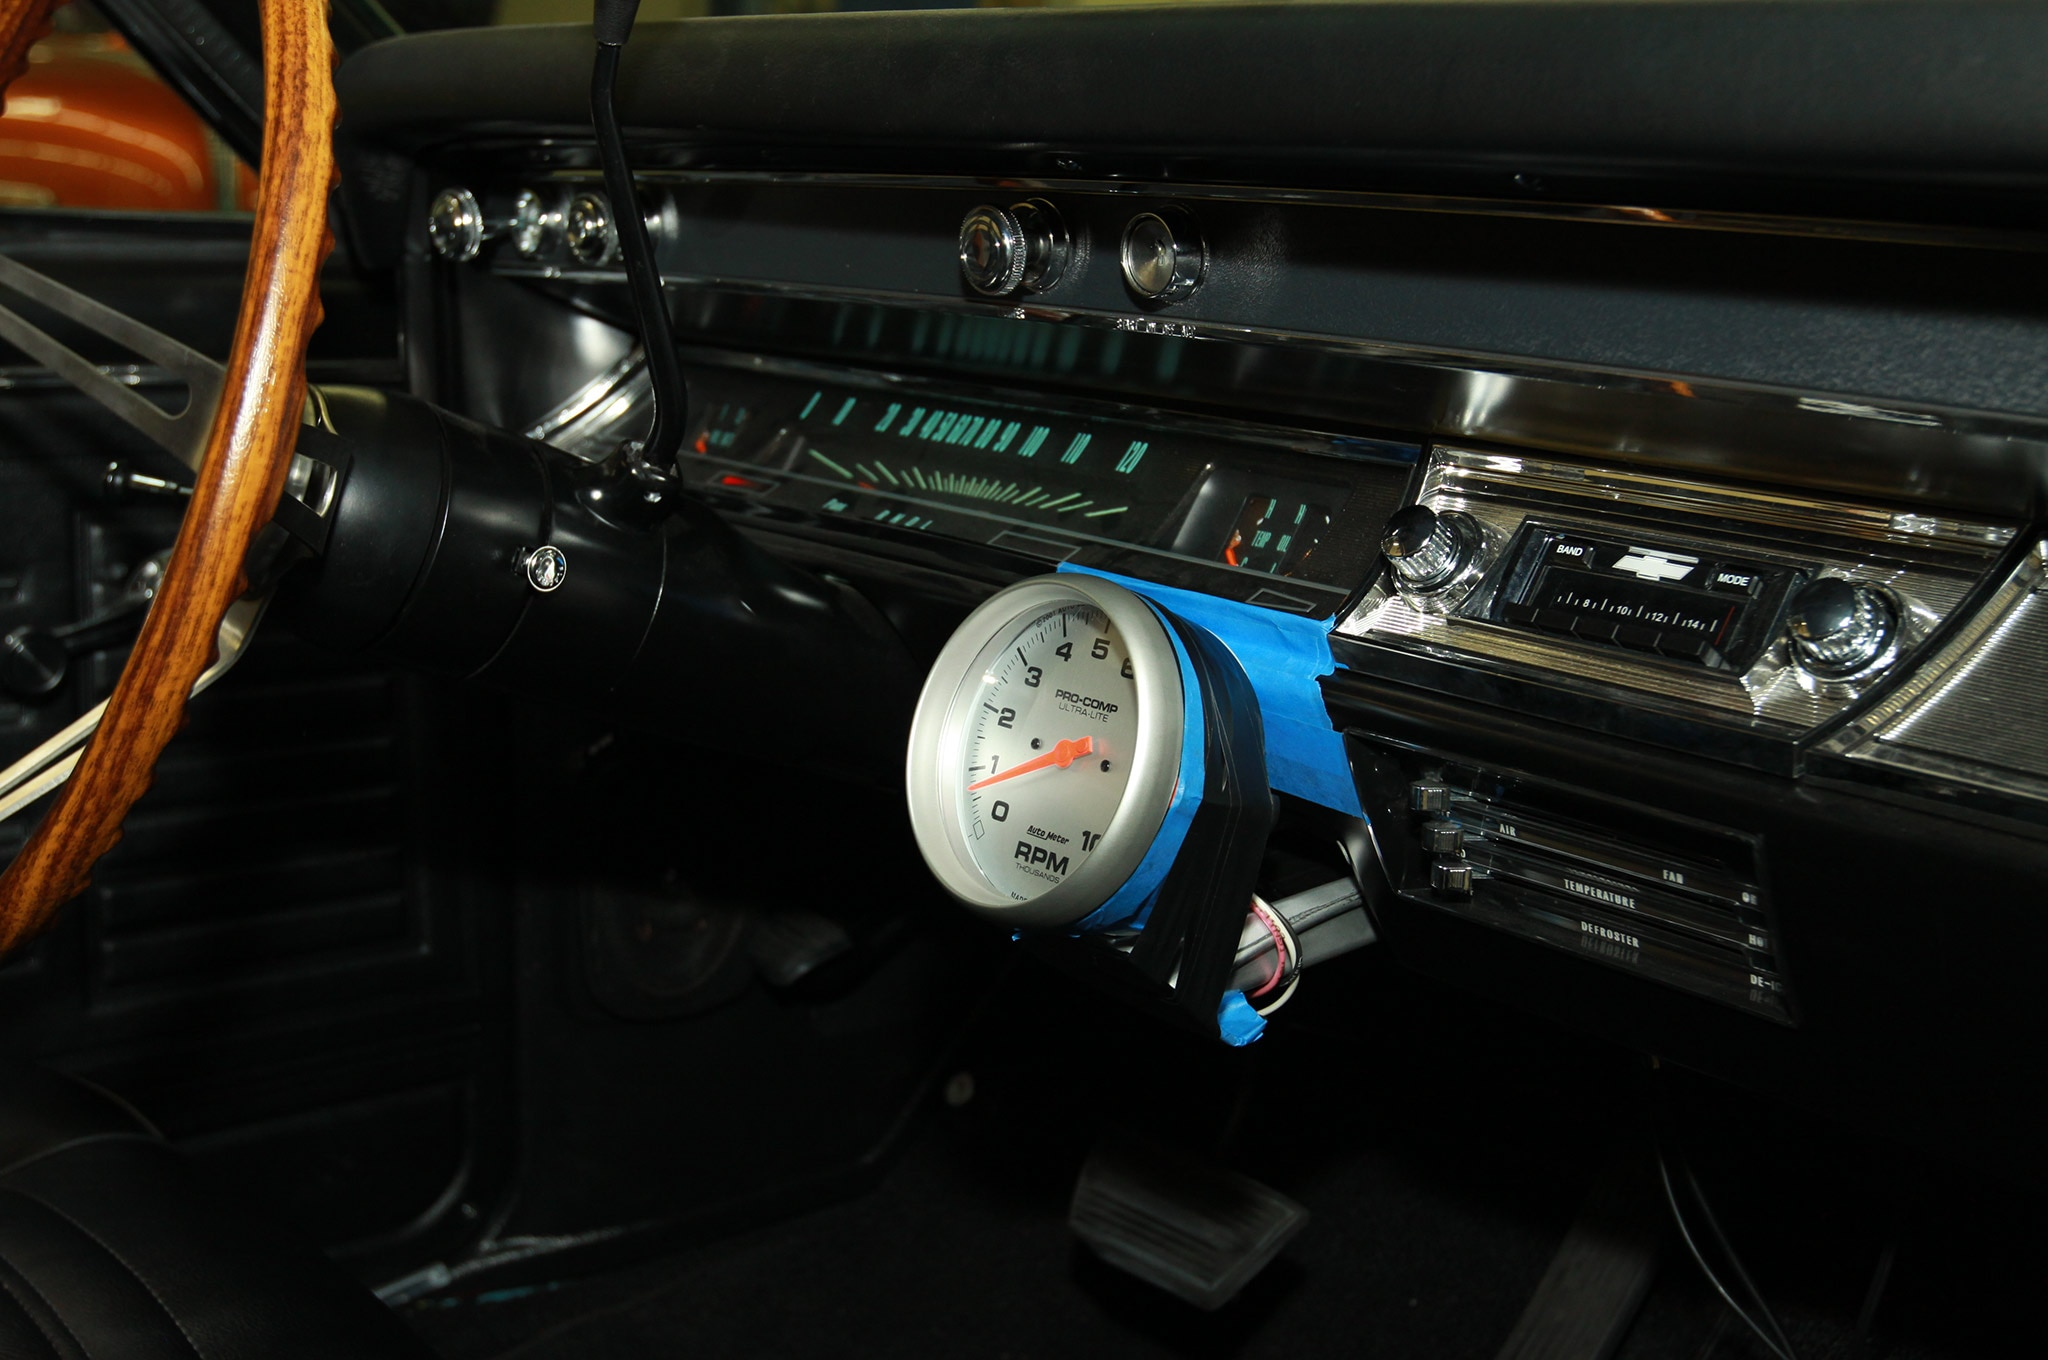 medium resolution of wiring diagram chevy caprice 2 door 327 how to wire an electronic tachometer as easy as 1 2 3